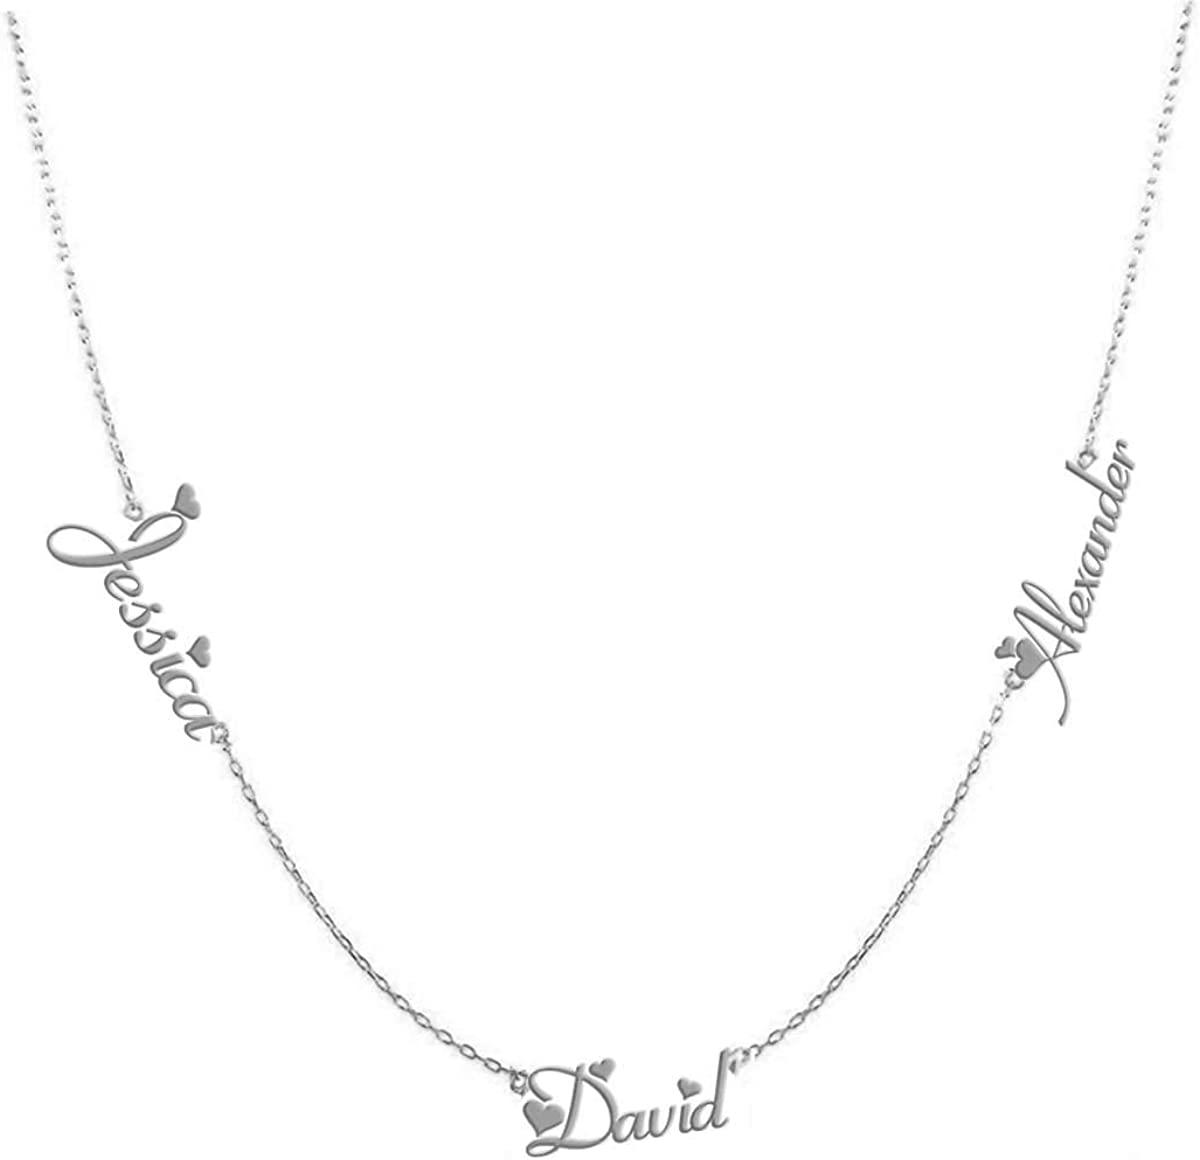 Three Name Necklace for Women Custom Family Chain Nameplate Pendant Gift